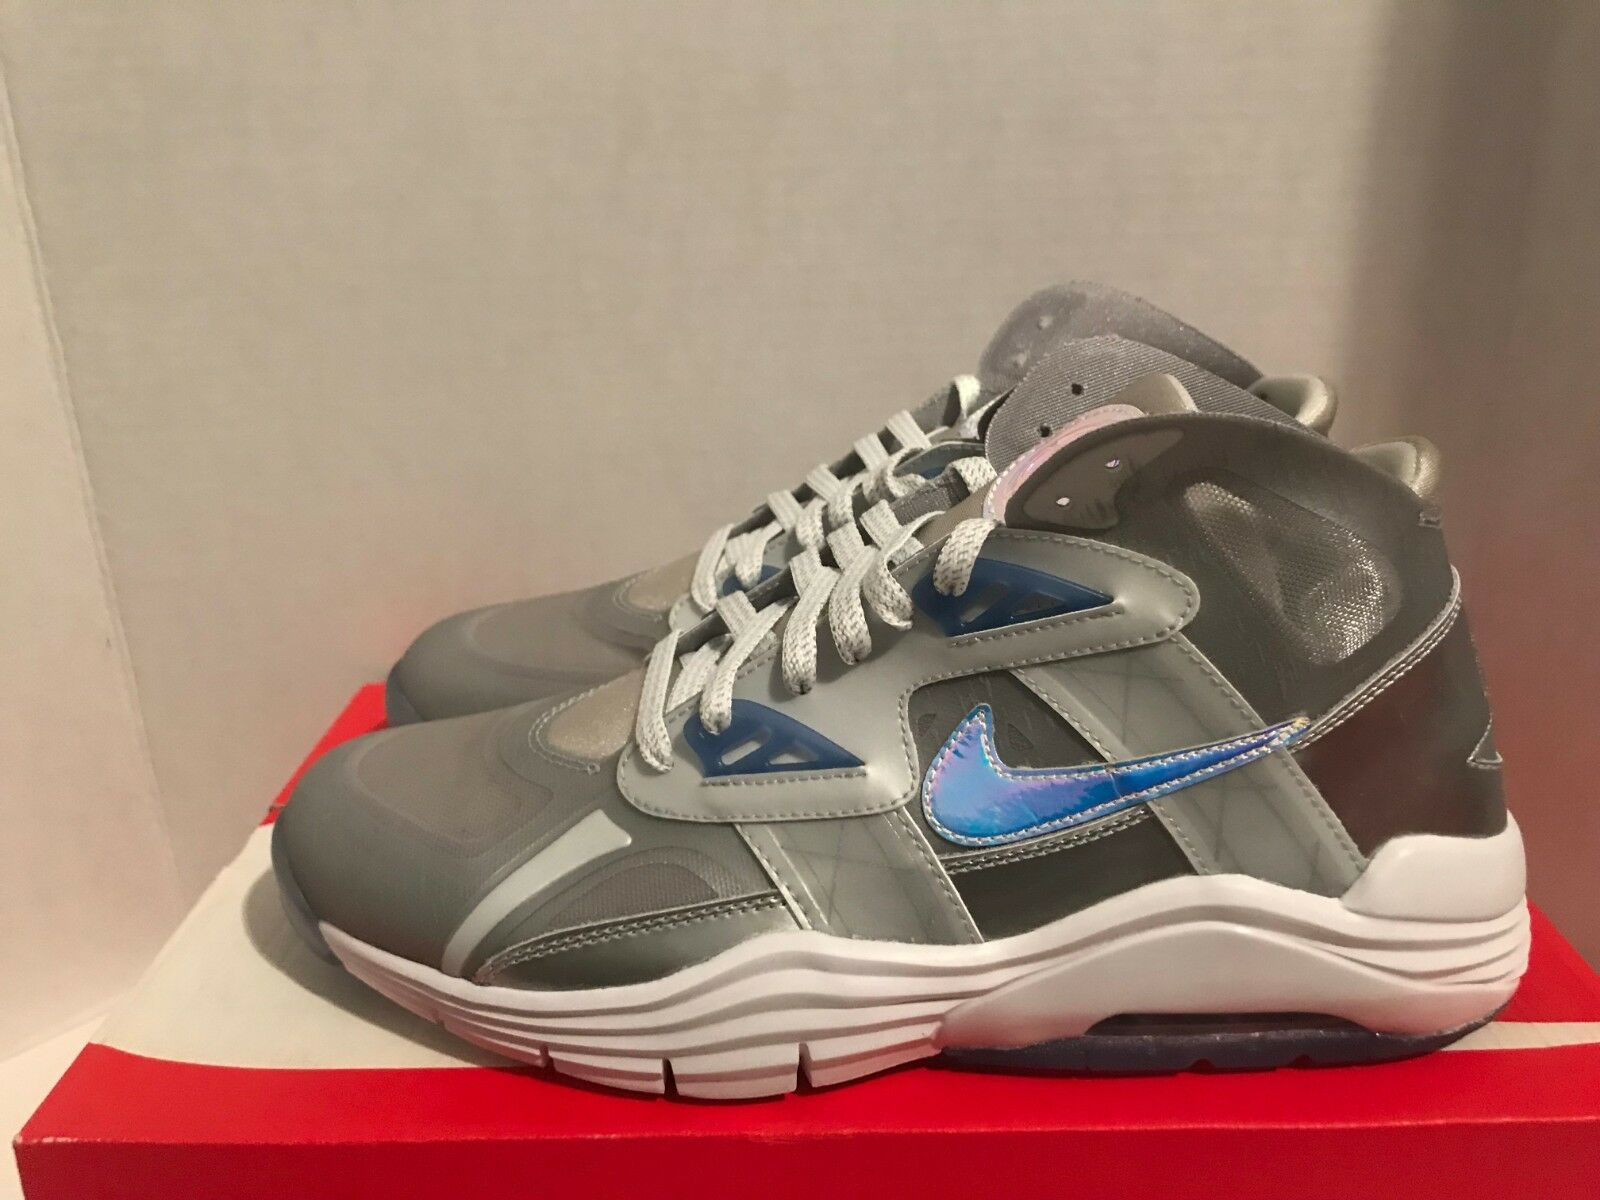 79008cdfd43a Nike Lunar Lunar Lunar 180 Trainer SC PRM QS Super Bowl Ice Men s Size 11 DS